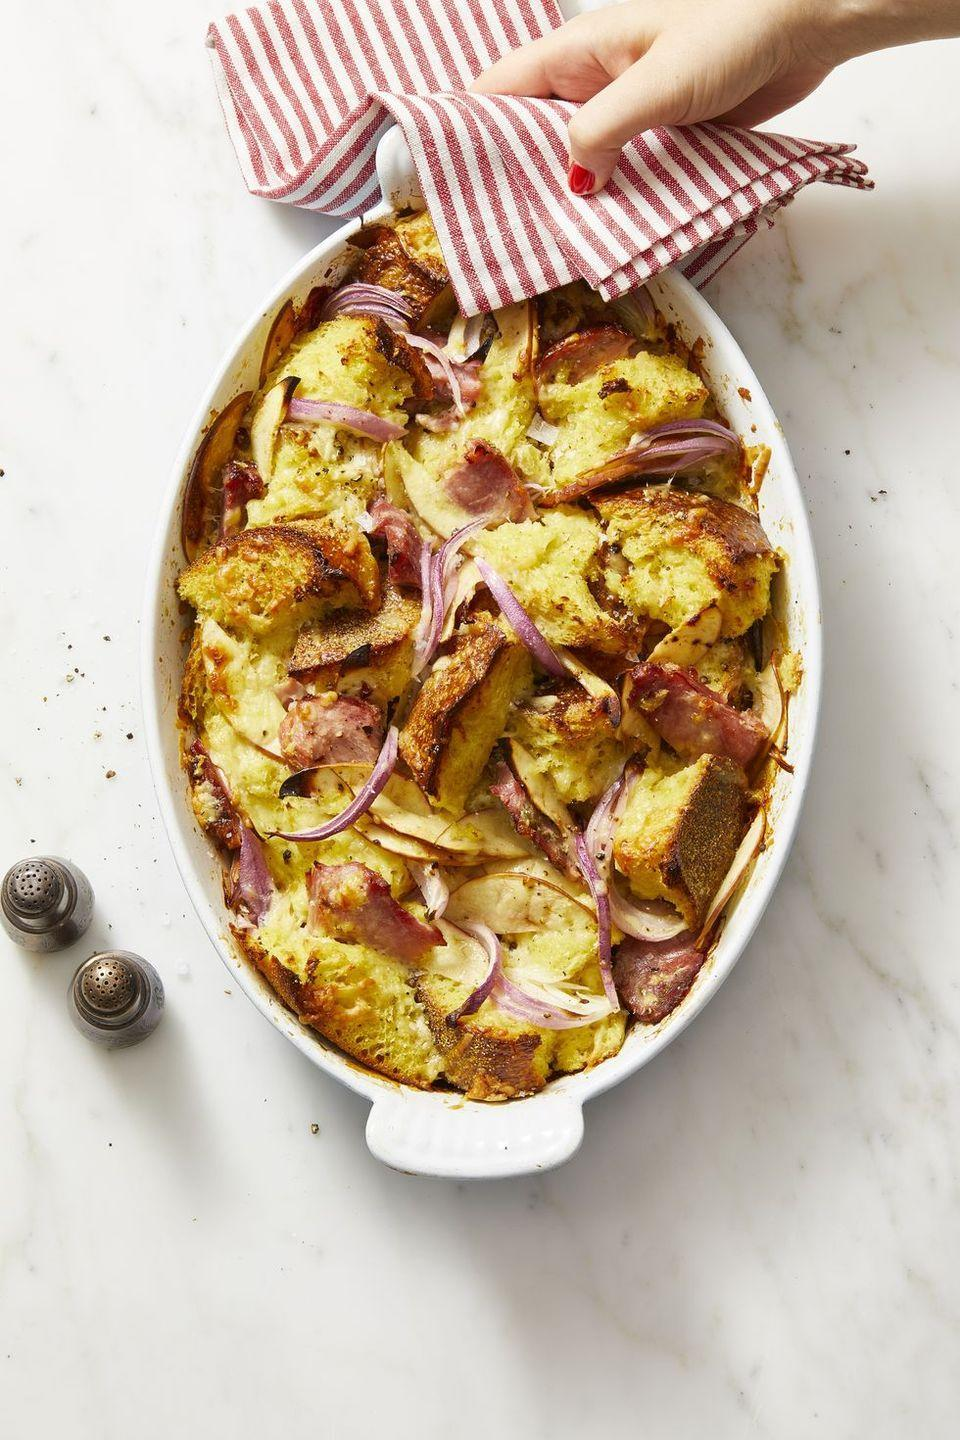 "<p>Fluffy sourdough bread bound by a rich egg mixture and combined with onion, apple, ham and Cheddar makes a breakfast statement that's fit for any holiday.</p><p><em><a href=""https://www.goodhousekeeping.com/food-recipes/a29305072/ham-cheddar-and-red-onion-bread-pudding/"" rel=""nofollow noopener"" target=""_blank"" data-ylk=""slk:Get the recipe for Ham, Cheddar, and Red Onion Bread Pudding »"" class=""link rapid-noclick-resp"">Get the recipe for Ham, Cheddar, and Red Onion Bread Pudding »</a></em></p><p><strong>RELATED: </strong><a href=""https://www.goodhousekeeping.com/holidays/christmas-ideas/g2998/christmas-breakfasts/"" rel=""nofollow noopener"" target=""_blank"" data-ylk=""slk:40 Cozy Breakfasts to Make on Christmas Morning"" class=""link rapid-noclick-resp"">40 Cozy Breakfasts to Make on Christmas Morning</a><br></p>"